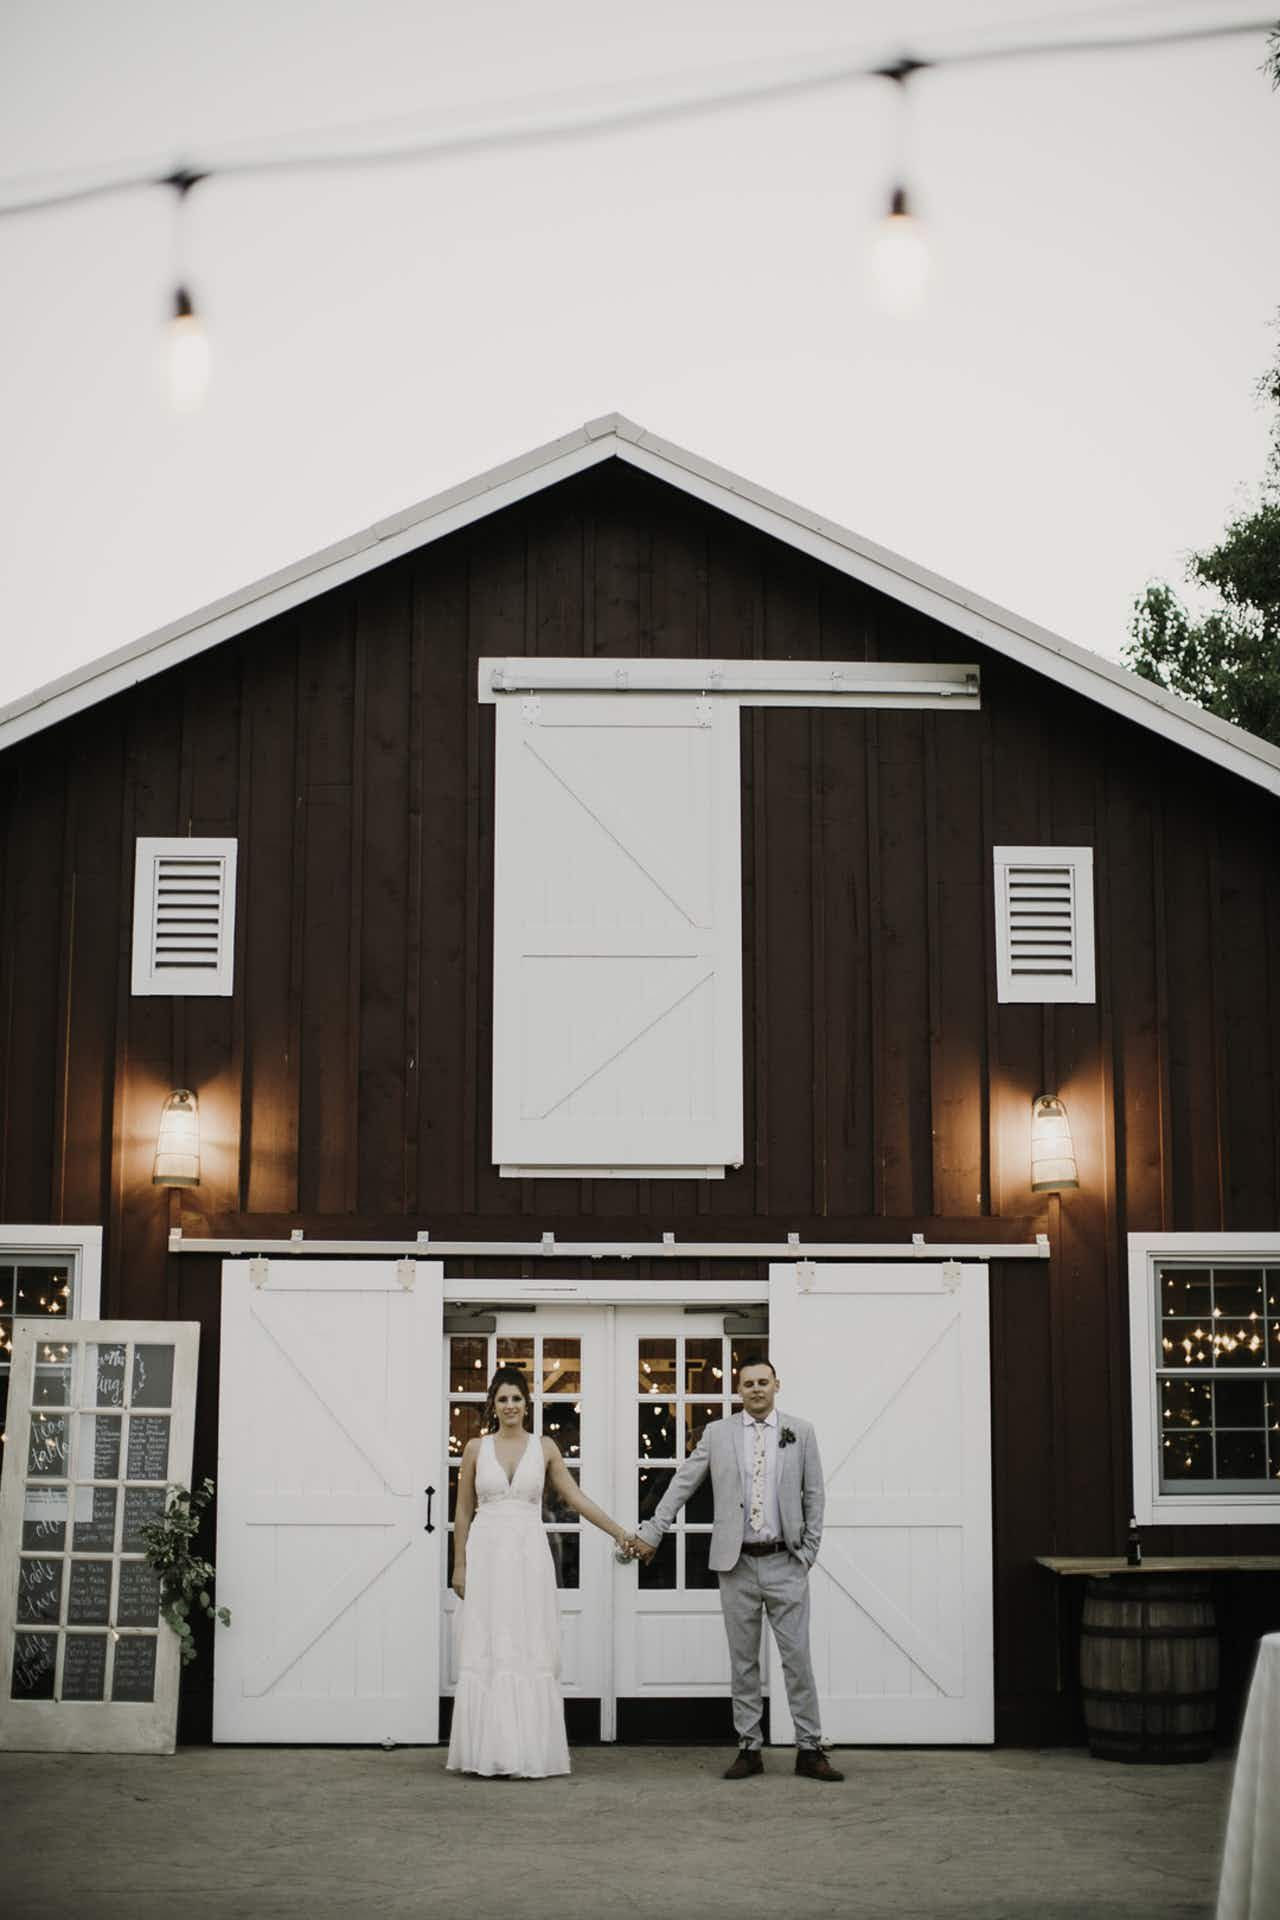 A Sweet Colorado Wedding At The Barn At Raccoon Creek Colorado Wedding Venues Barns Colorado Wedding Venues Colorado Wedding Reception